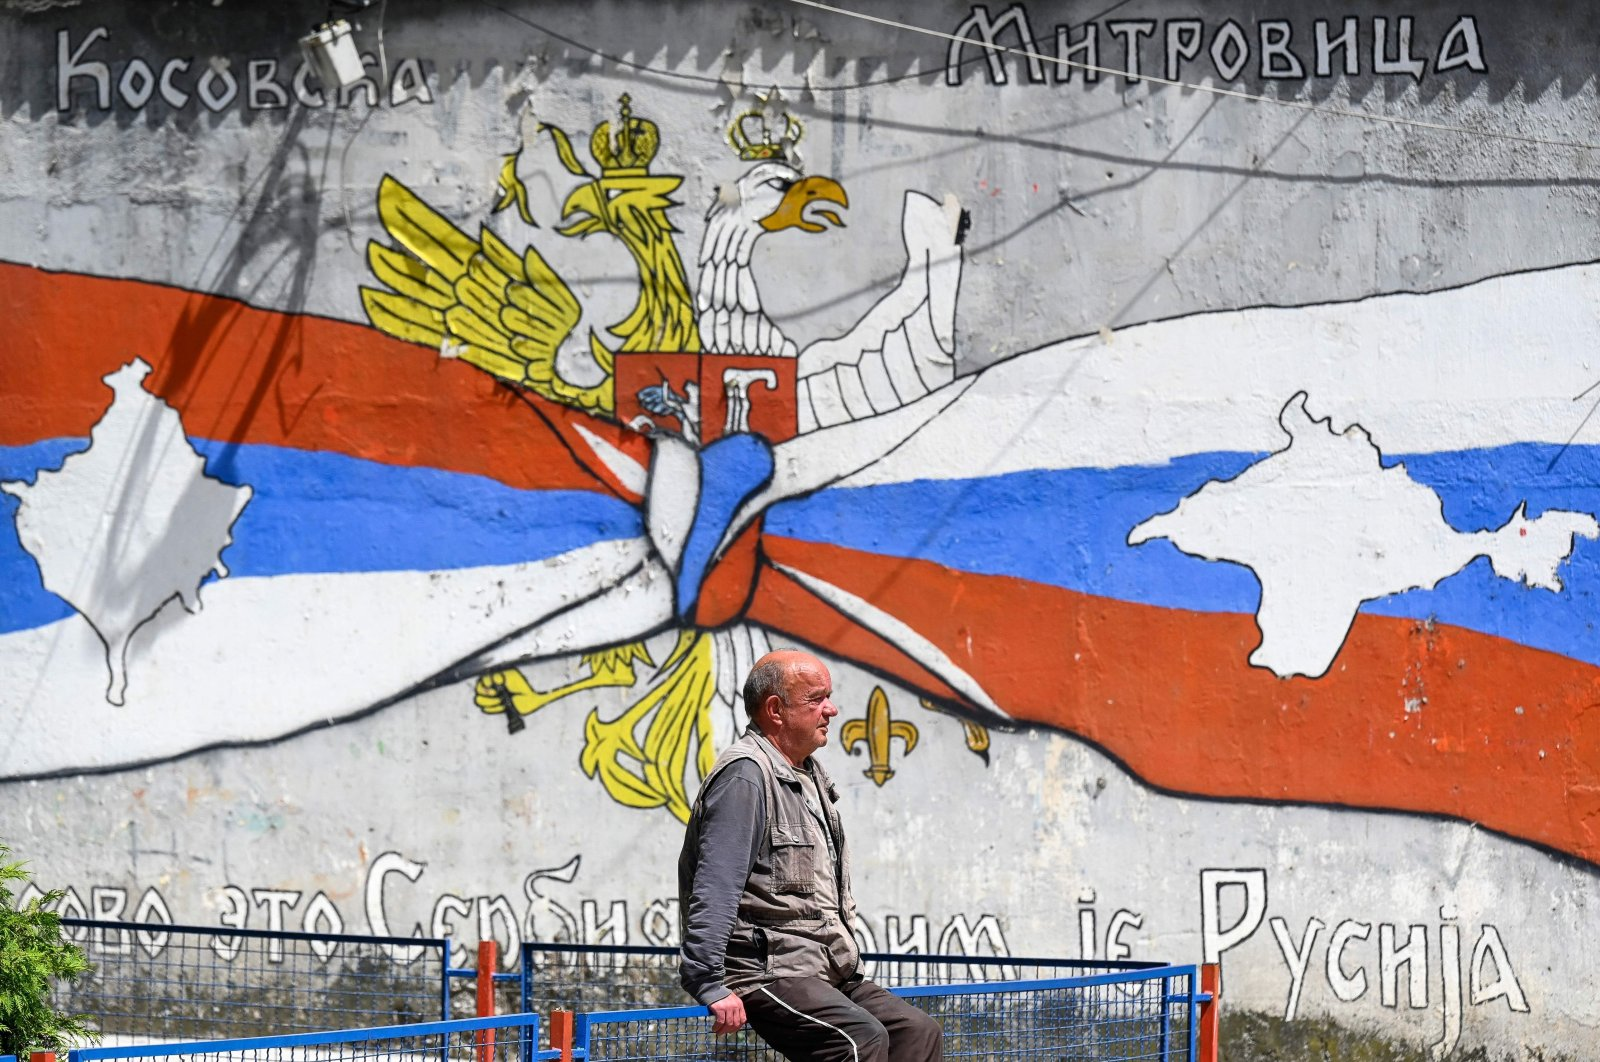 A Kosovo Serb man walks next to a graffiti showing the map of Kosovo in a Serbian flag, on a street in the majority ethnic-Serb northern part of the city of Mitrovica, Kosovo, June 15, 2021. (Photo by Armend Niamani / AFP)